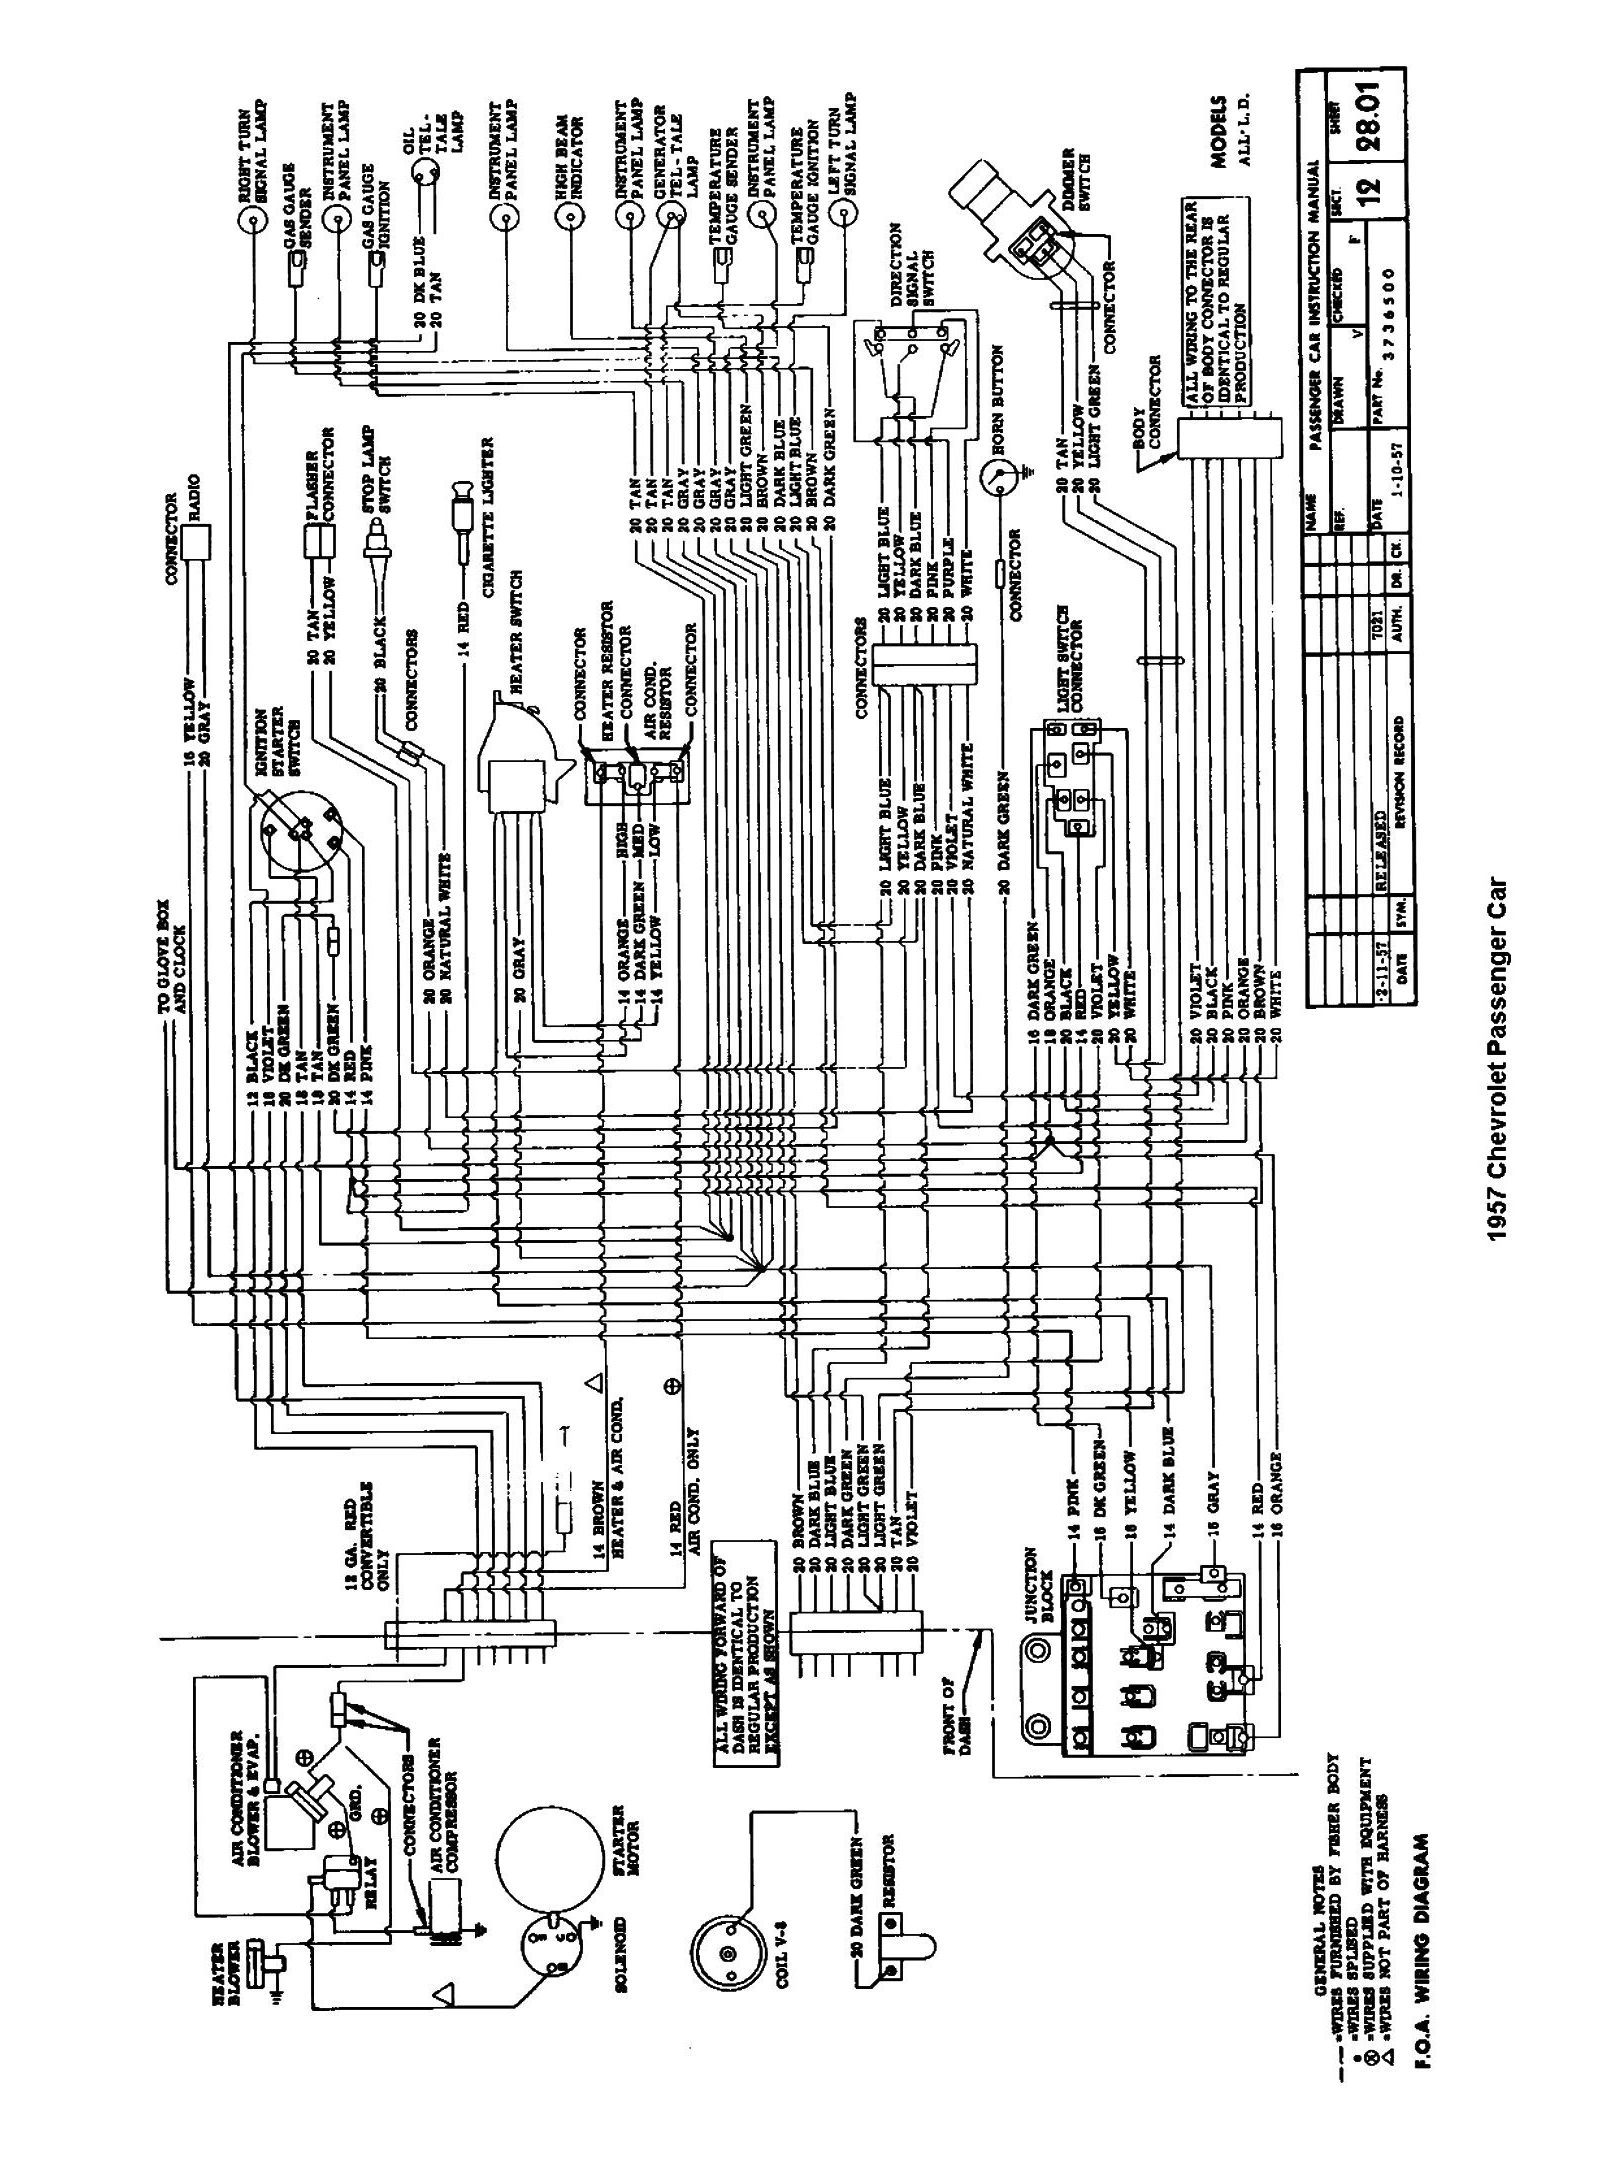 1956 Chevy Wiring Harness Diagram Guide And Troubleshooting Of 1957 Bel Air Dash Diagrams Rh Oldcarmanualproject Com